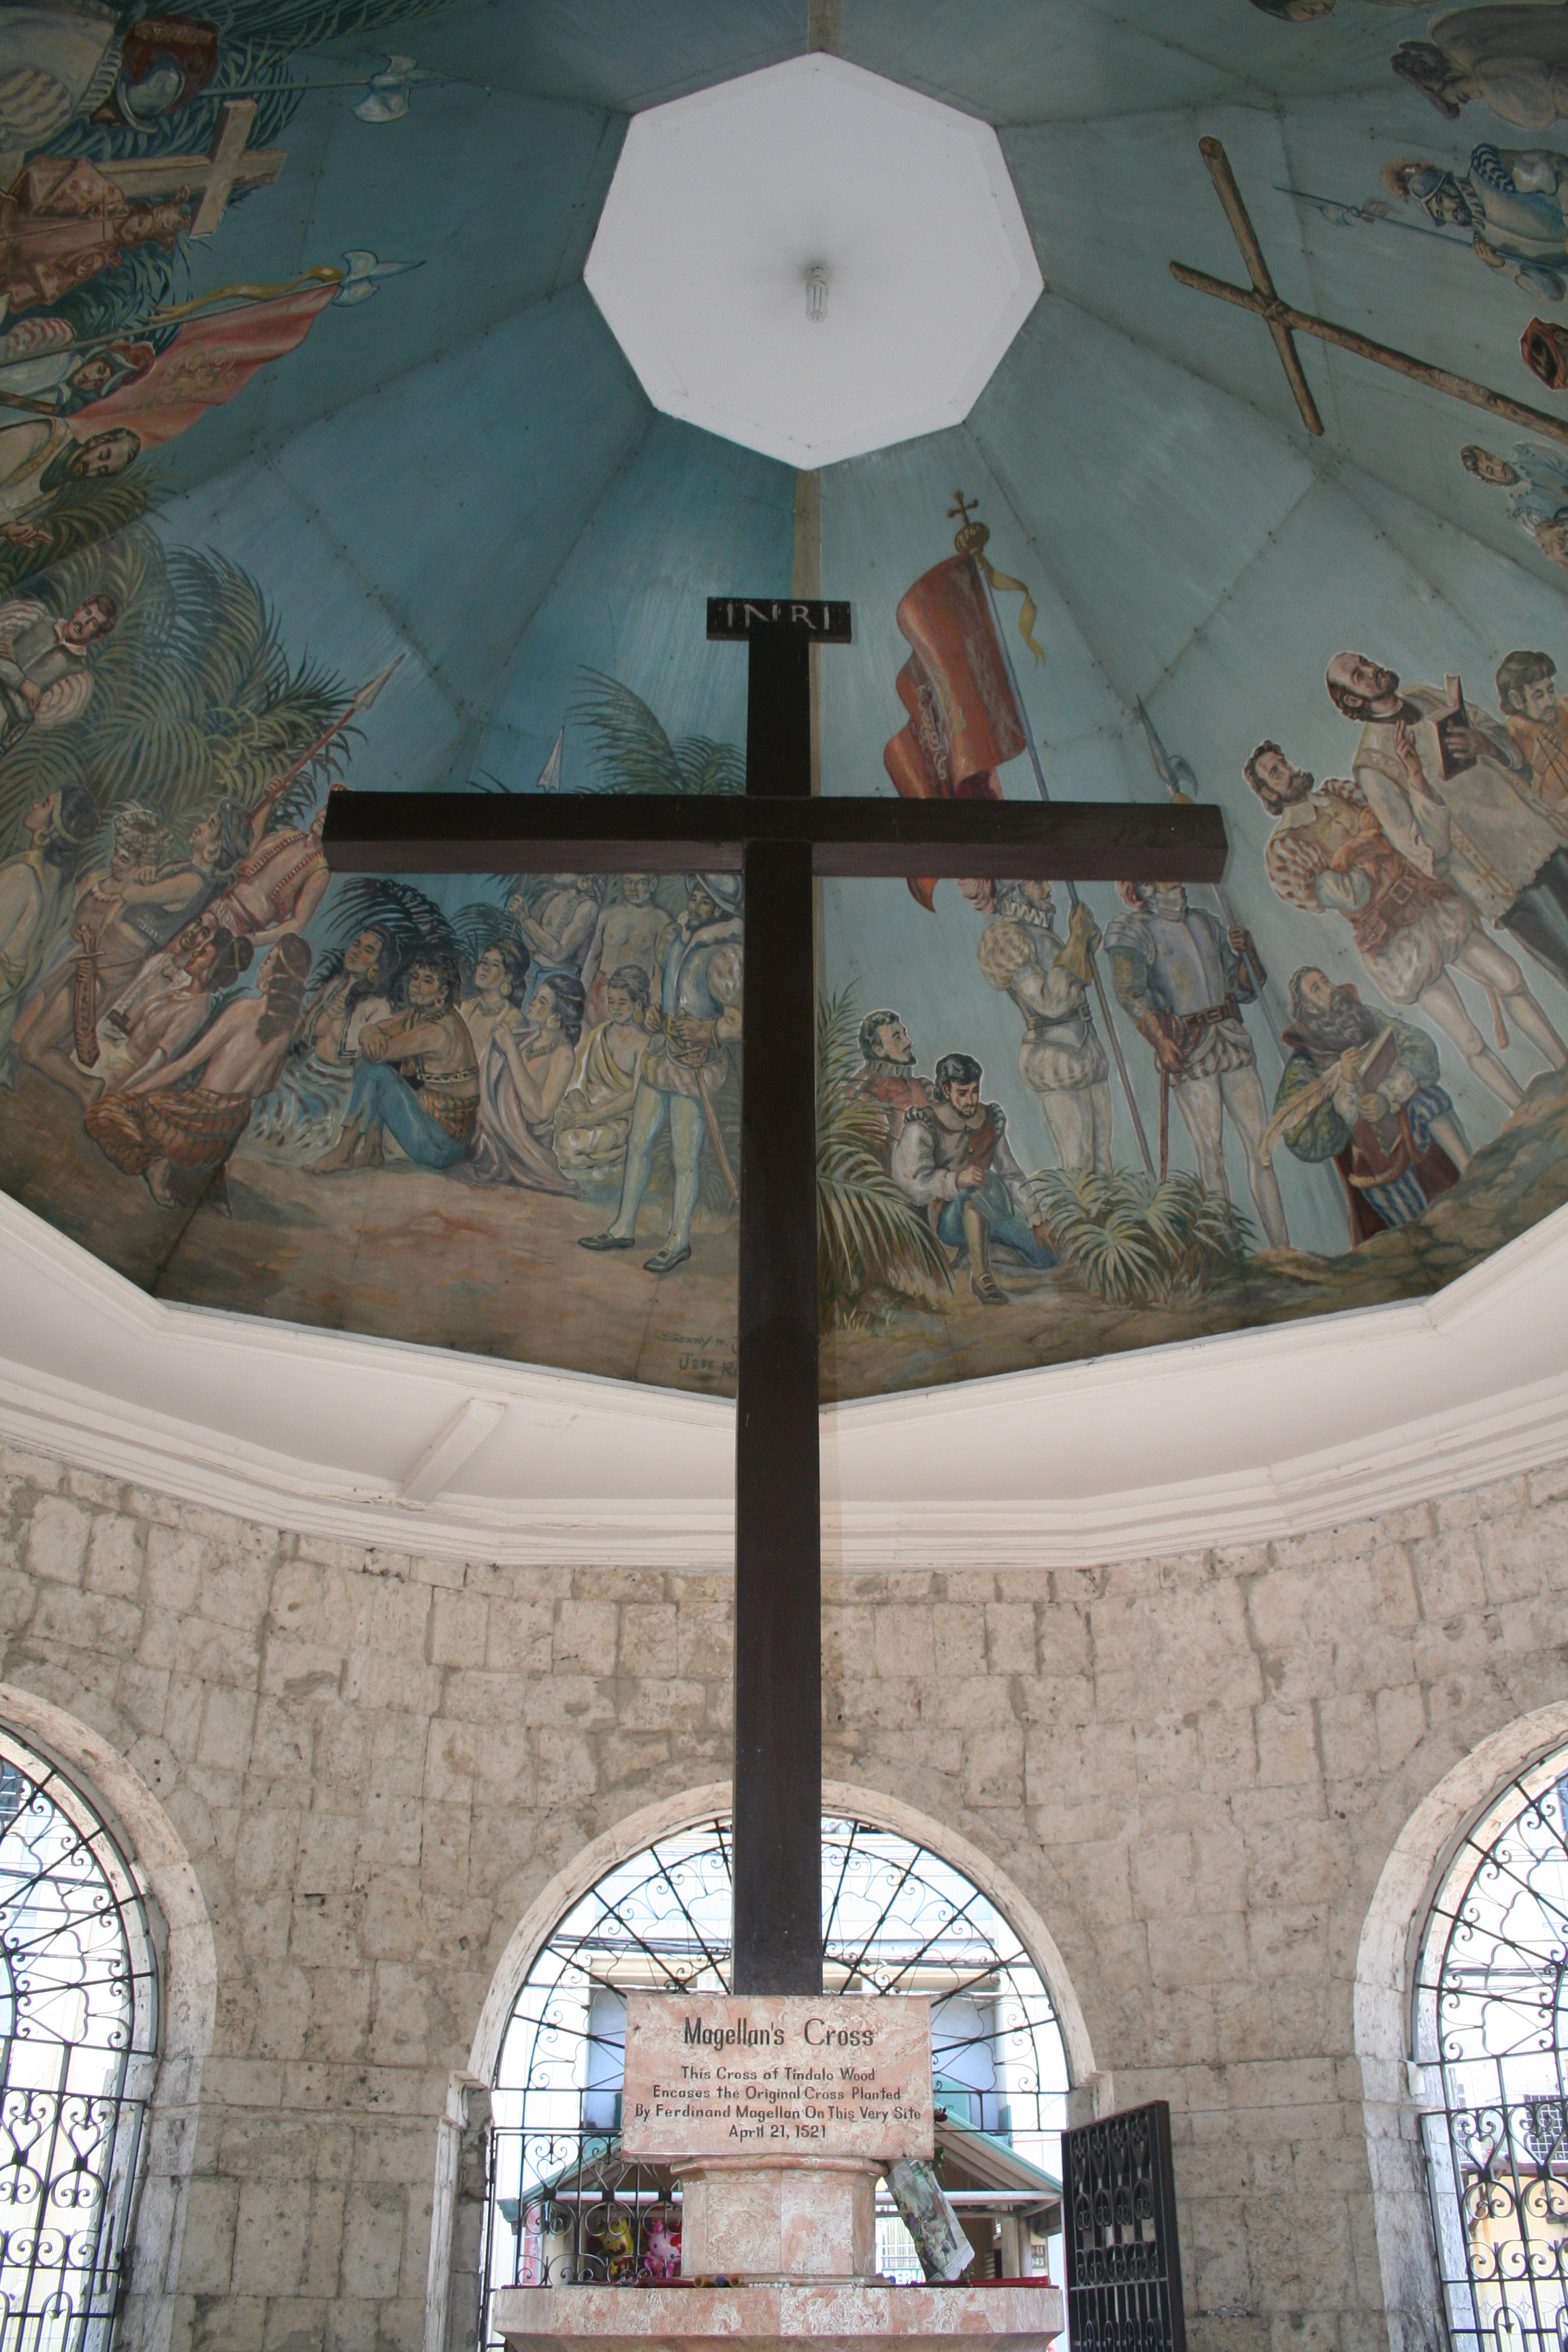 Magellan's Cross in Cebu Philippines